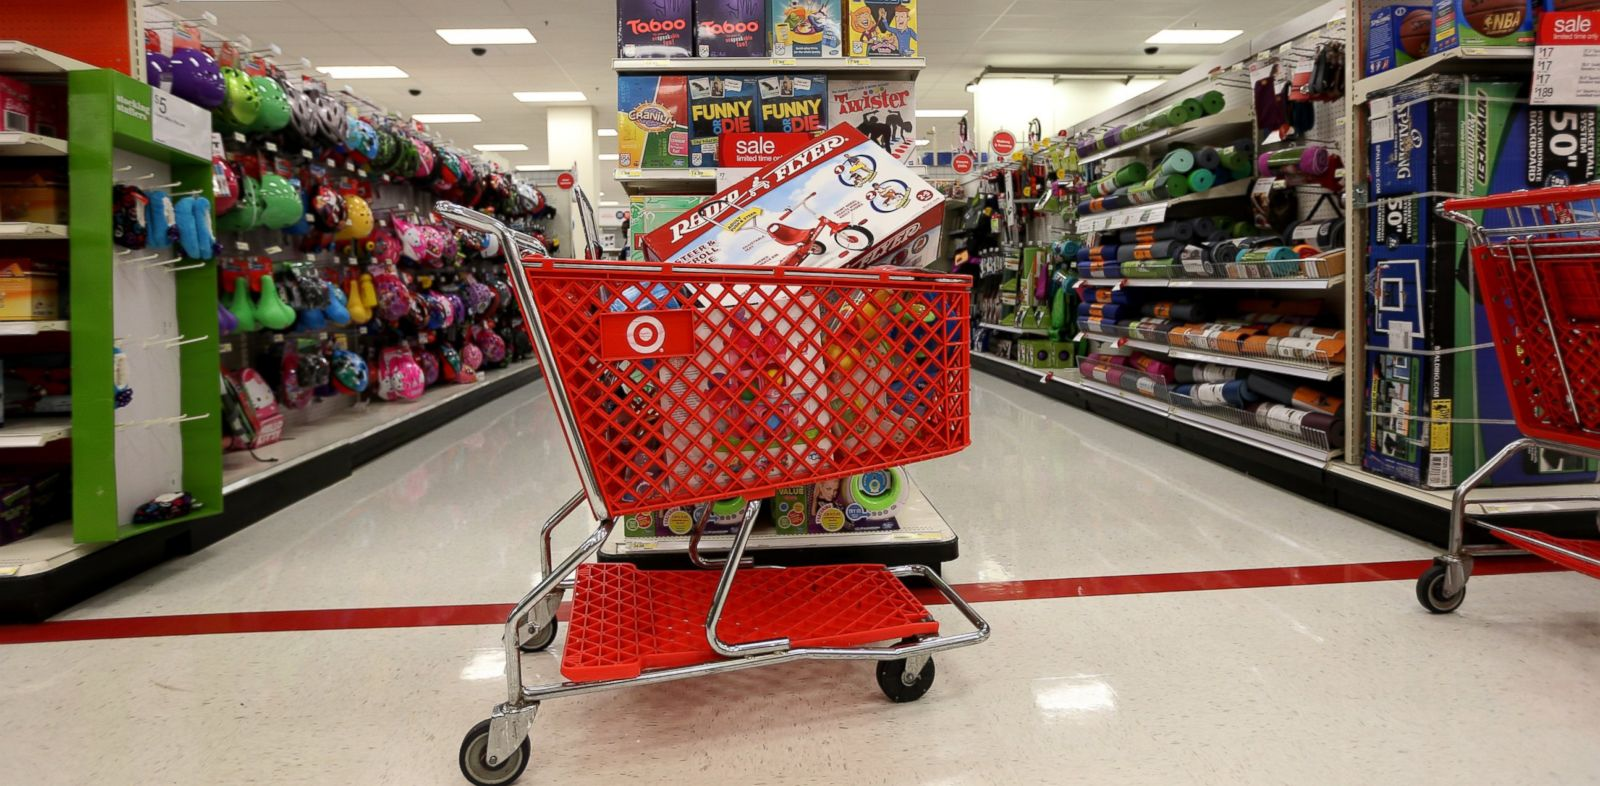 PHOTO: A shopping cart is seen in a Target store, December 19, 2013 in Miami, Florida.